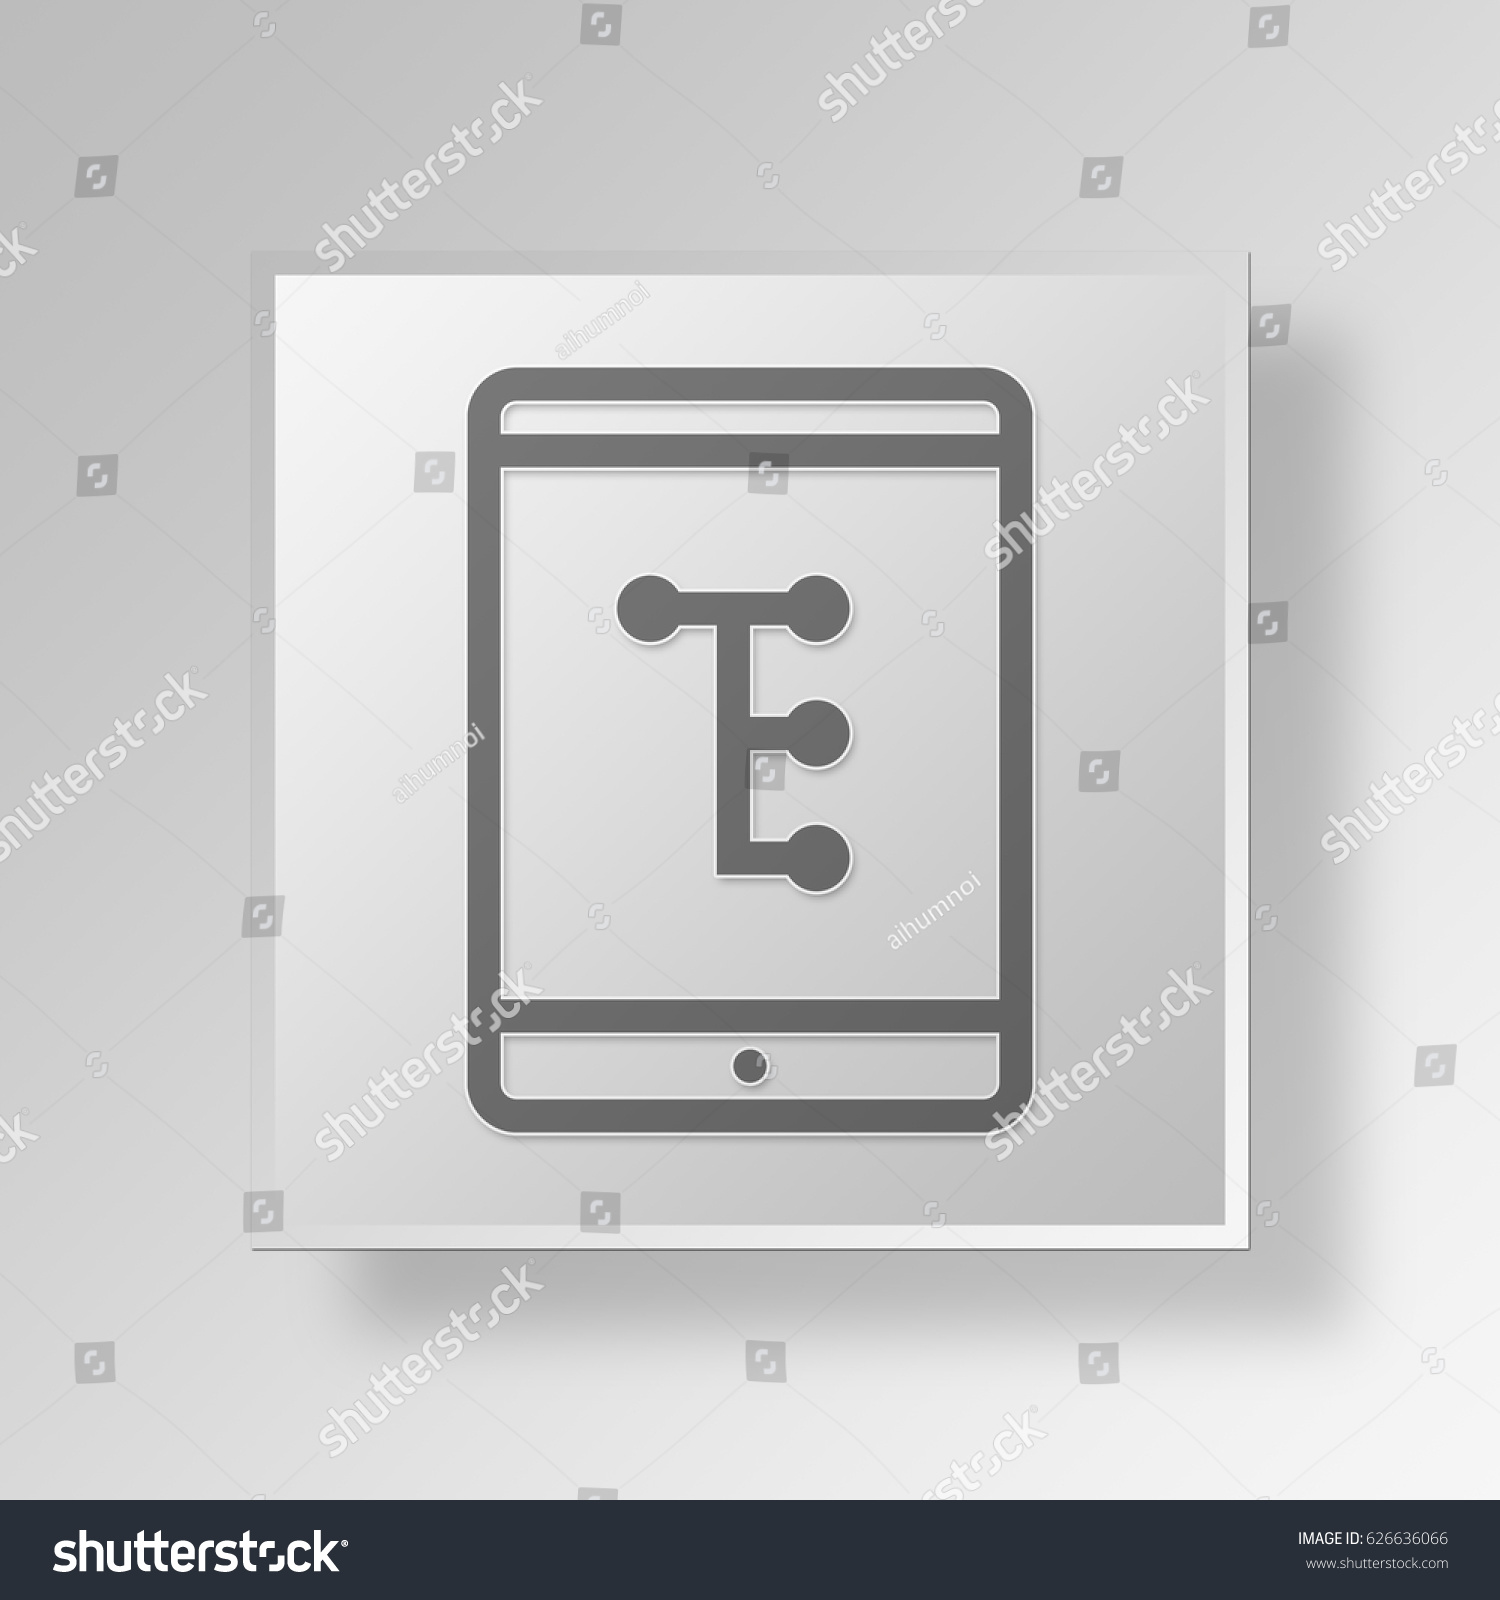 Lovely emergency stop switch symbol development action plan examples cool symbol switch images everything you need to know about stock photo d symbol gray square buycottarizona Images